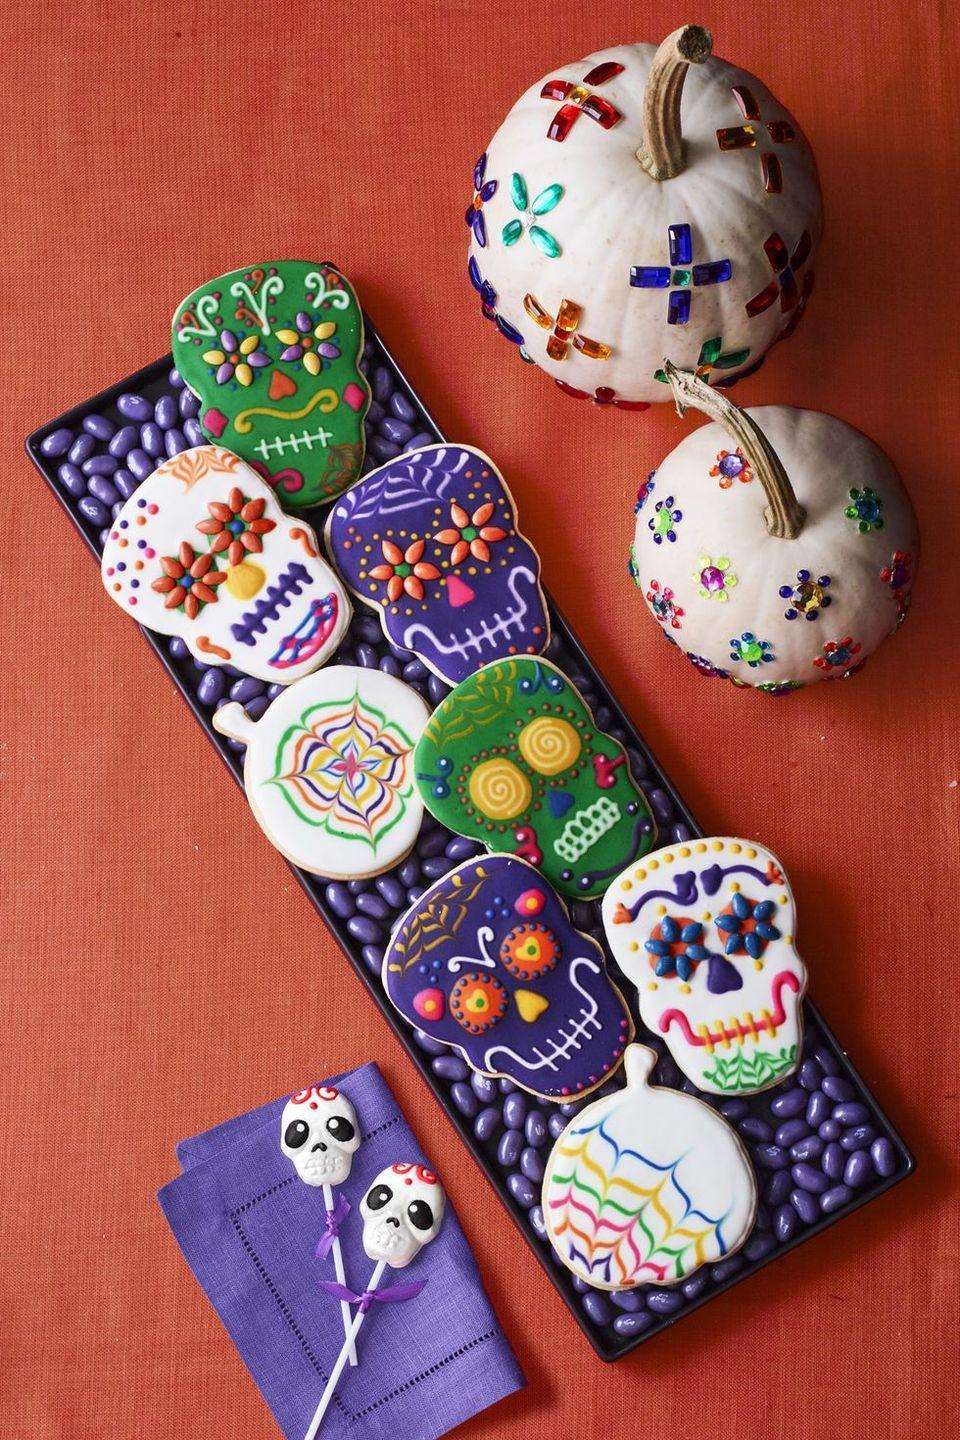 """<p>Honor the Day of the Dead with these colorful treats that aren't nearly as difficult to make as they look. <br></p><p><em><strong><a href=""""https://www.womansday.com/food-recipes/food-drinks/a23569445/cookie-skulls-and-pumpkin-sugar-cookie-cutouts-recipe/"""" rel=""""nofollow noopener"""" target=""""_blank"""" data-ylk=""""slk:Get the Cookie Skulls recipe."""" class=""""link rapid-noclick-resp"""">Get the Cookie Skulls recipe.</a></strong></em></p>"""